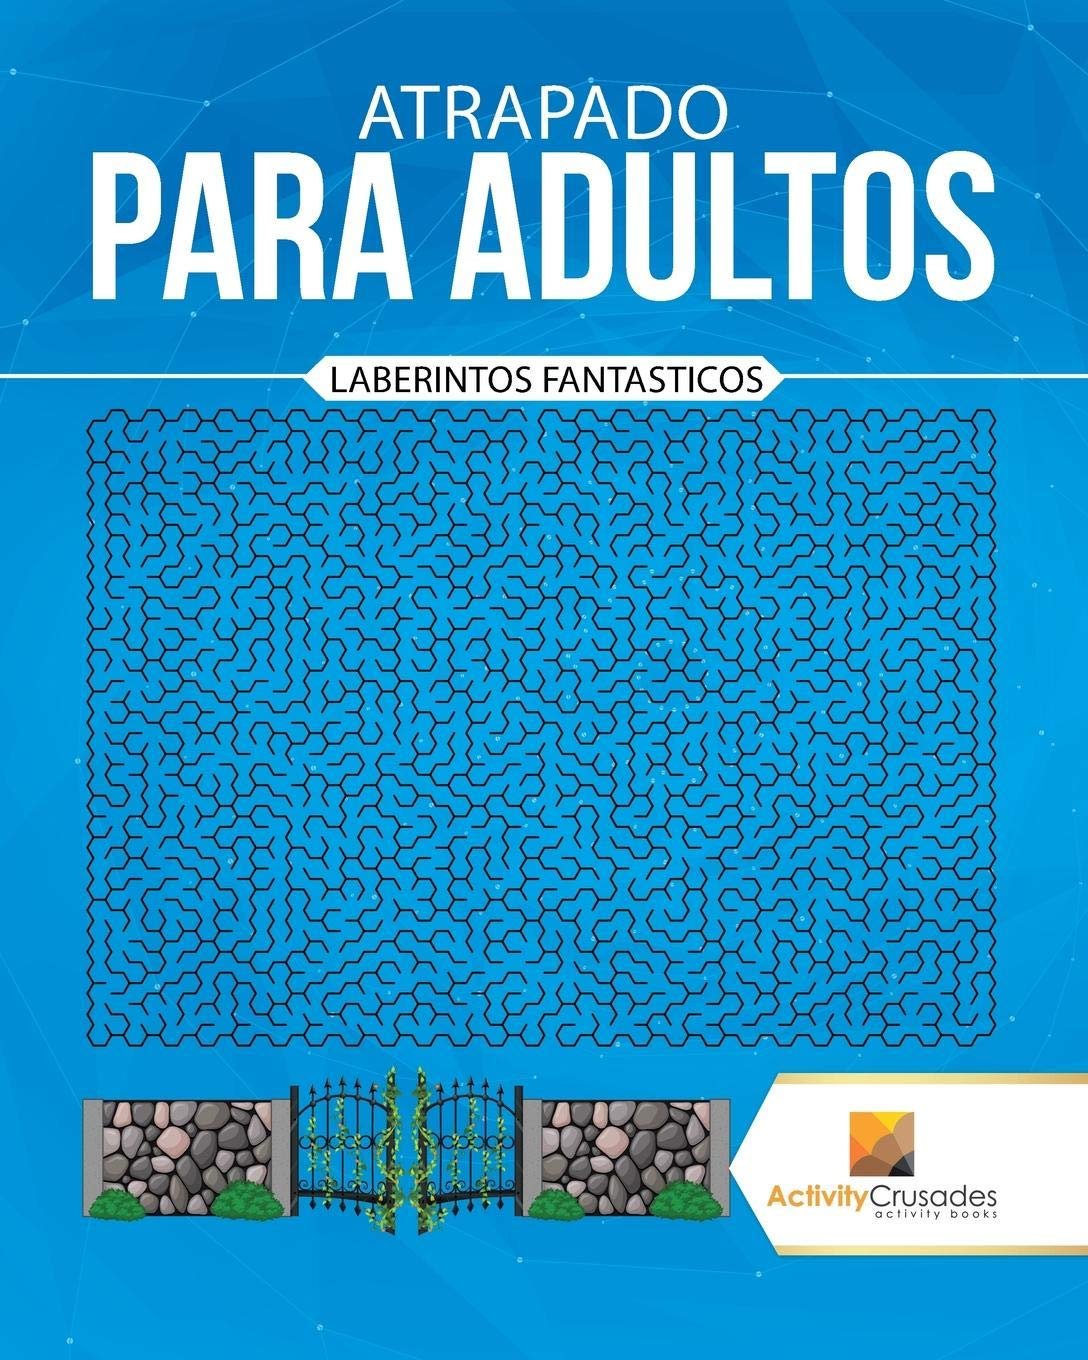 Atrapado Para Adultos : Laberintos Fantasticos (Spanish Edition) (Spanish) Paperback – October 15, 2017